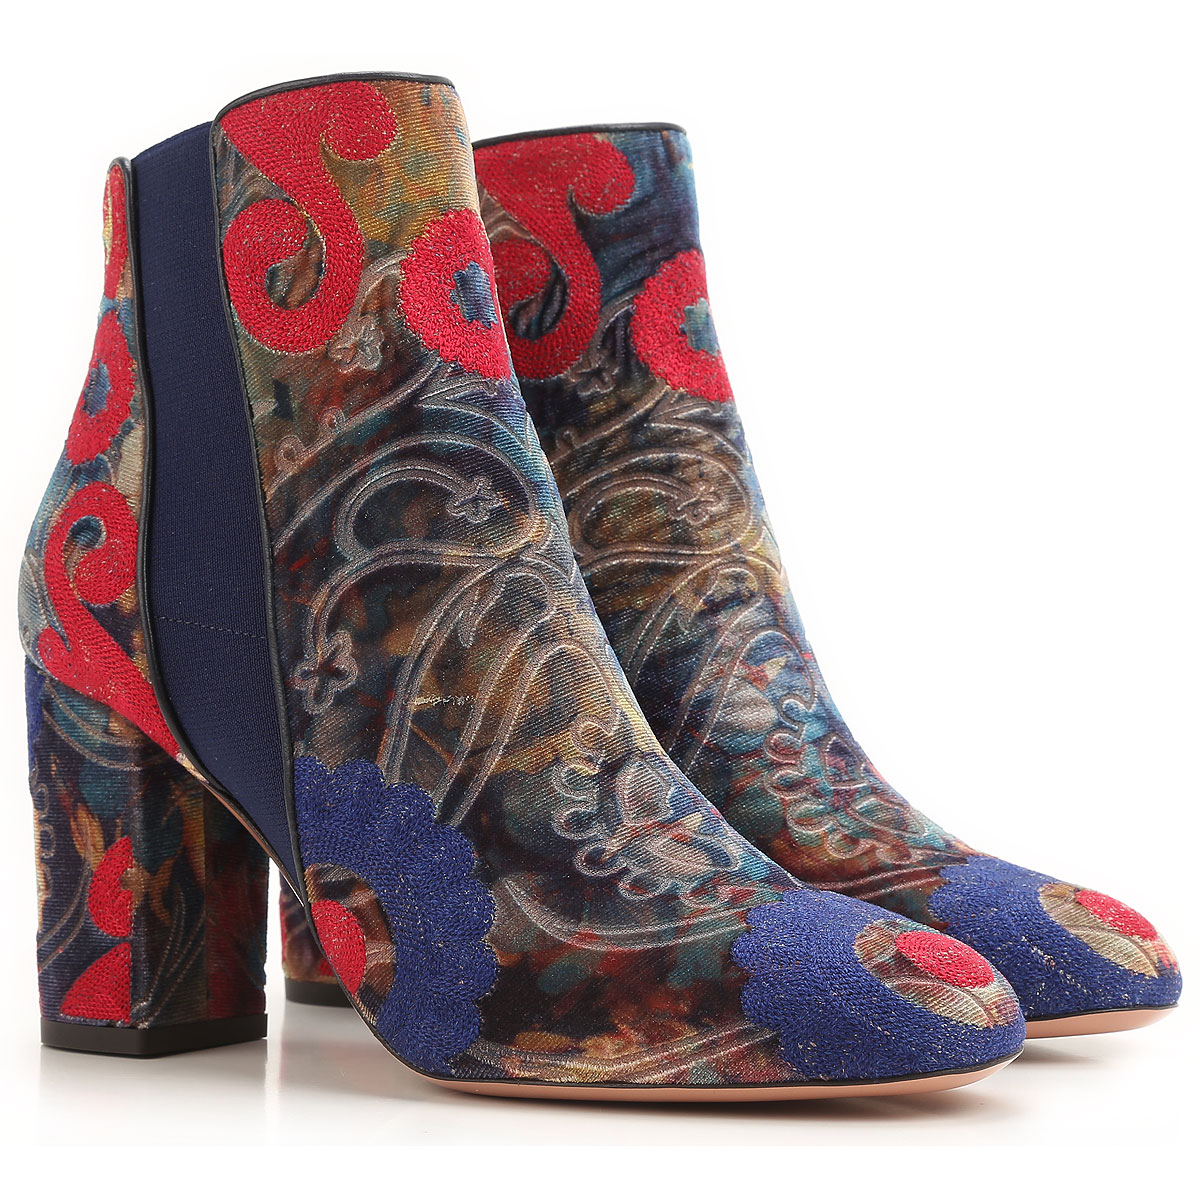 Image of Aquazzura Boots for Women, Booties On Sale in Outlet, Multicolor, Velvet, 2017, 5 6 7